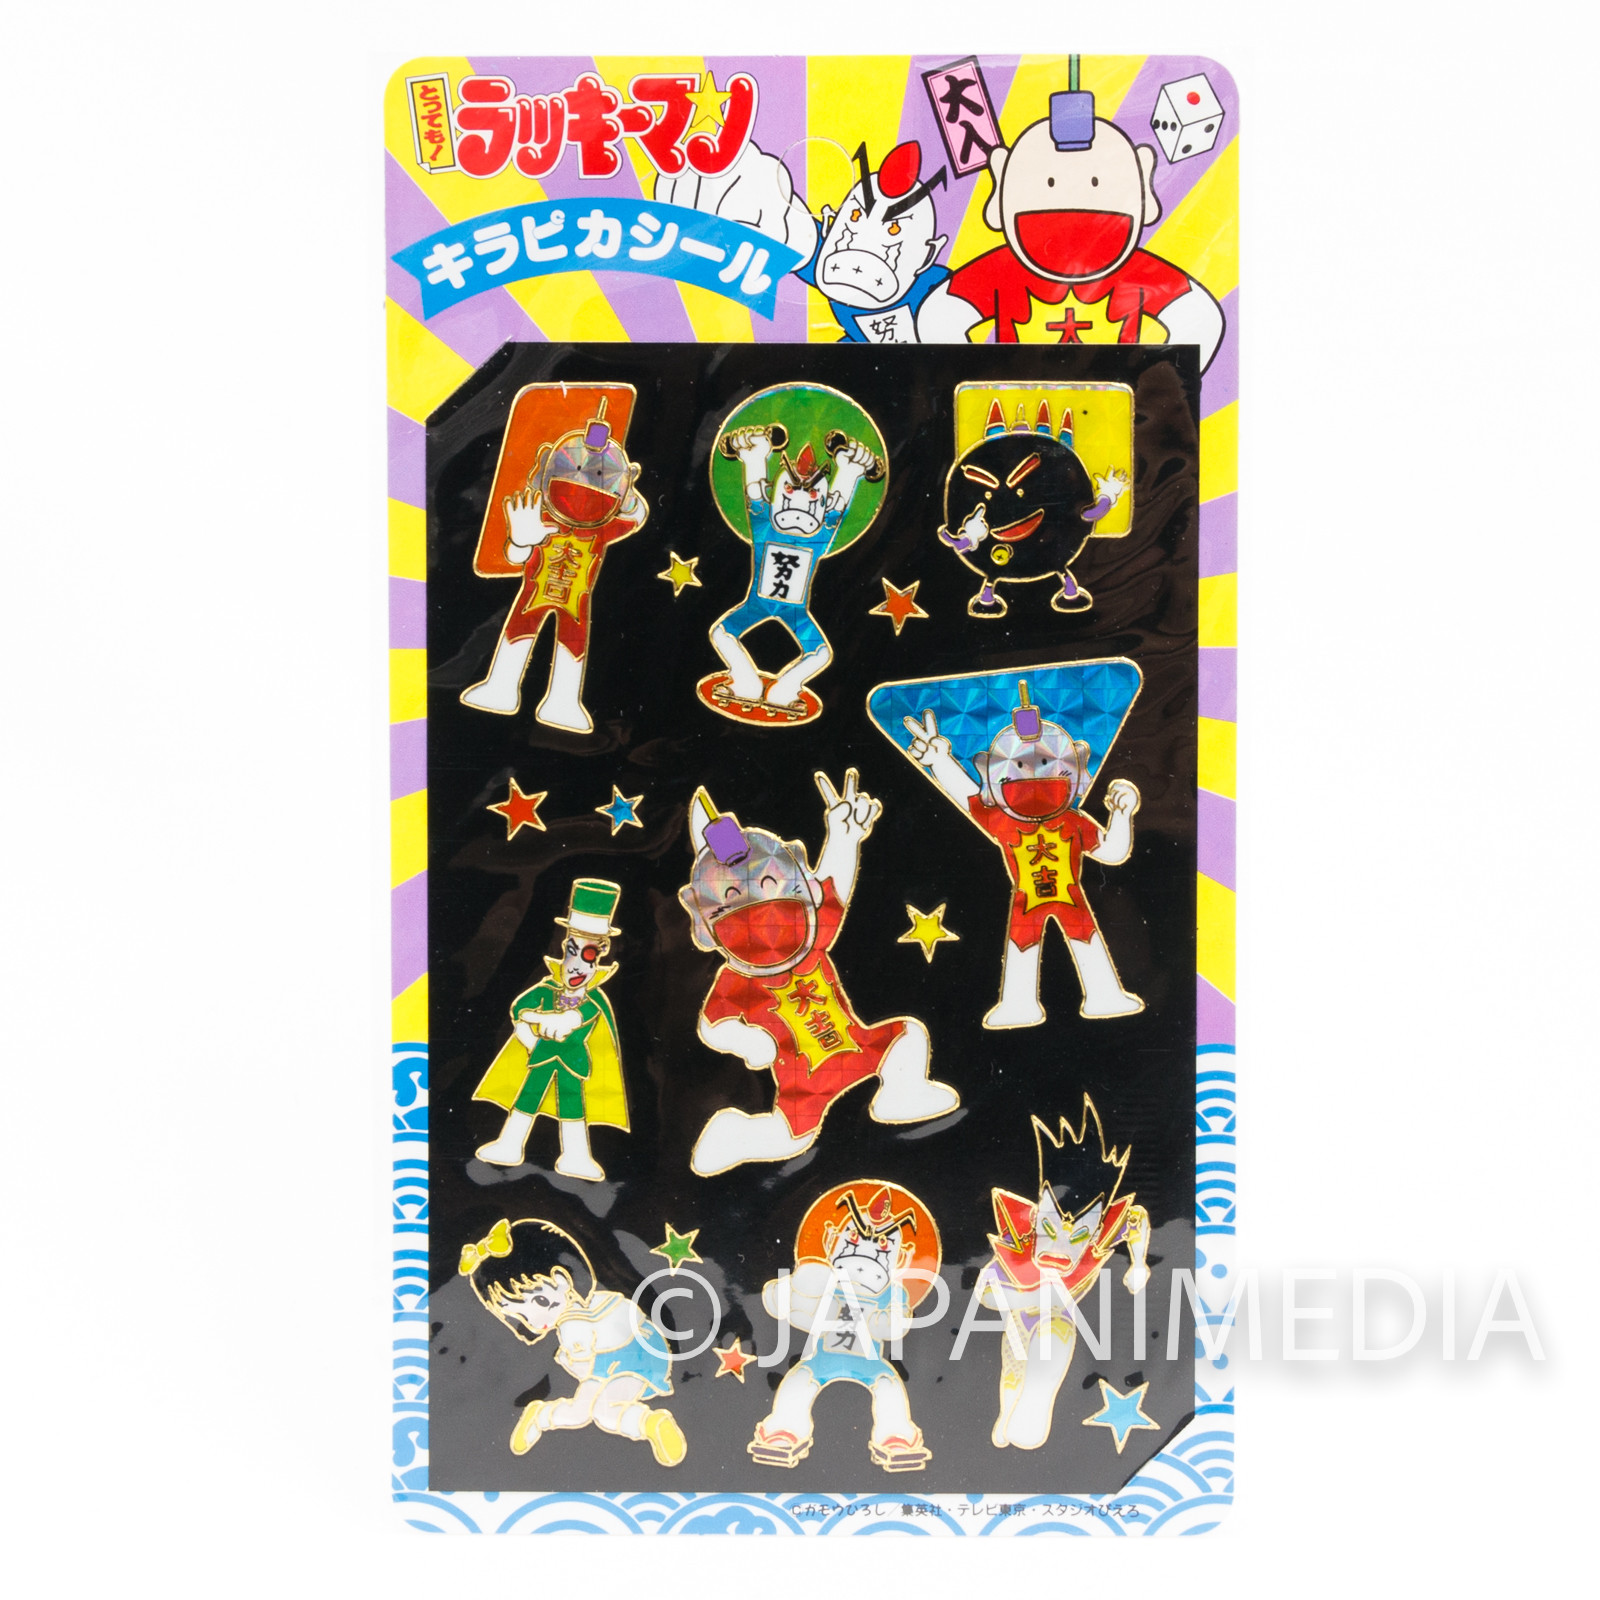 Tottemo Luckyman Sticker Sheet #2 JAPAN ANIME SHONEN JUMP